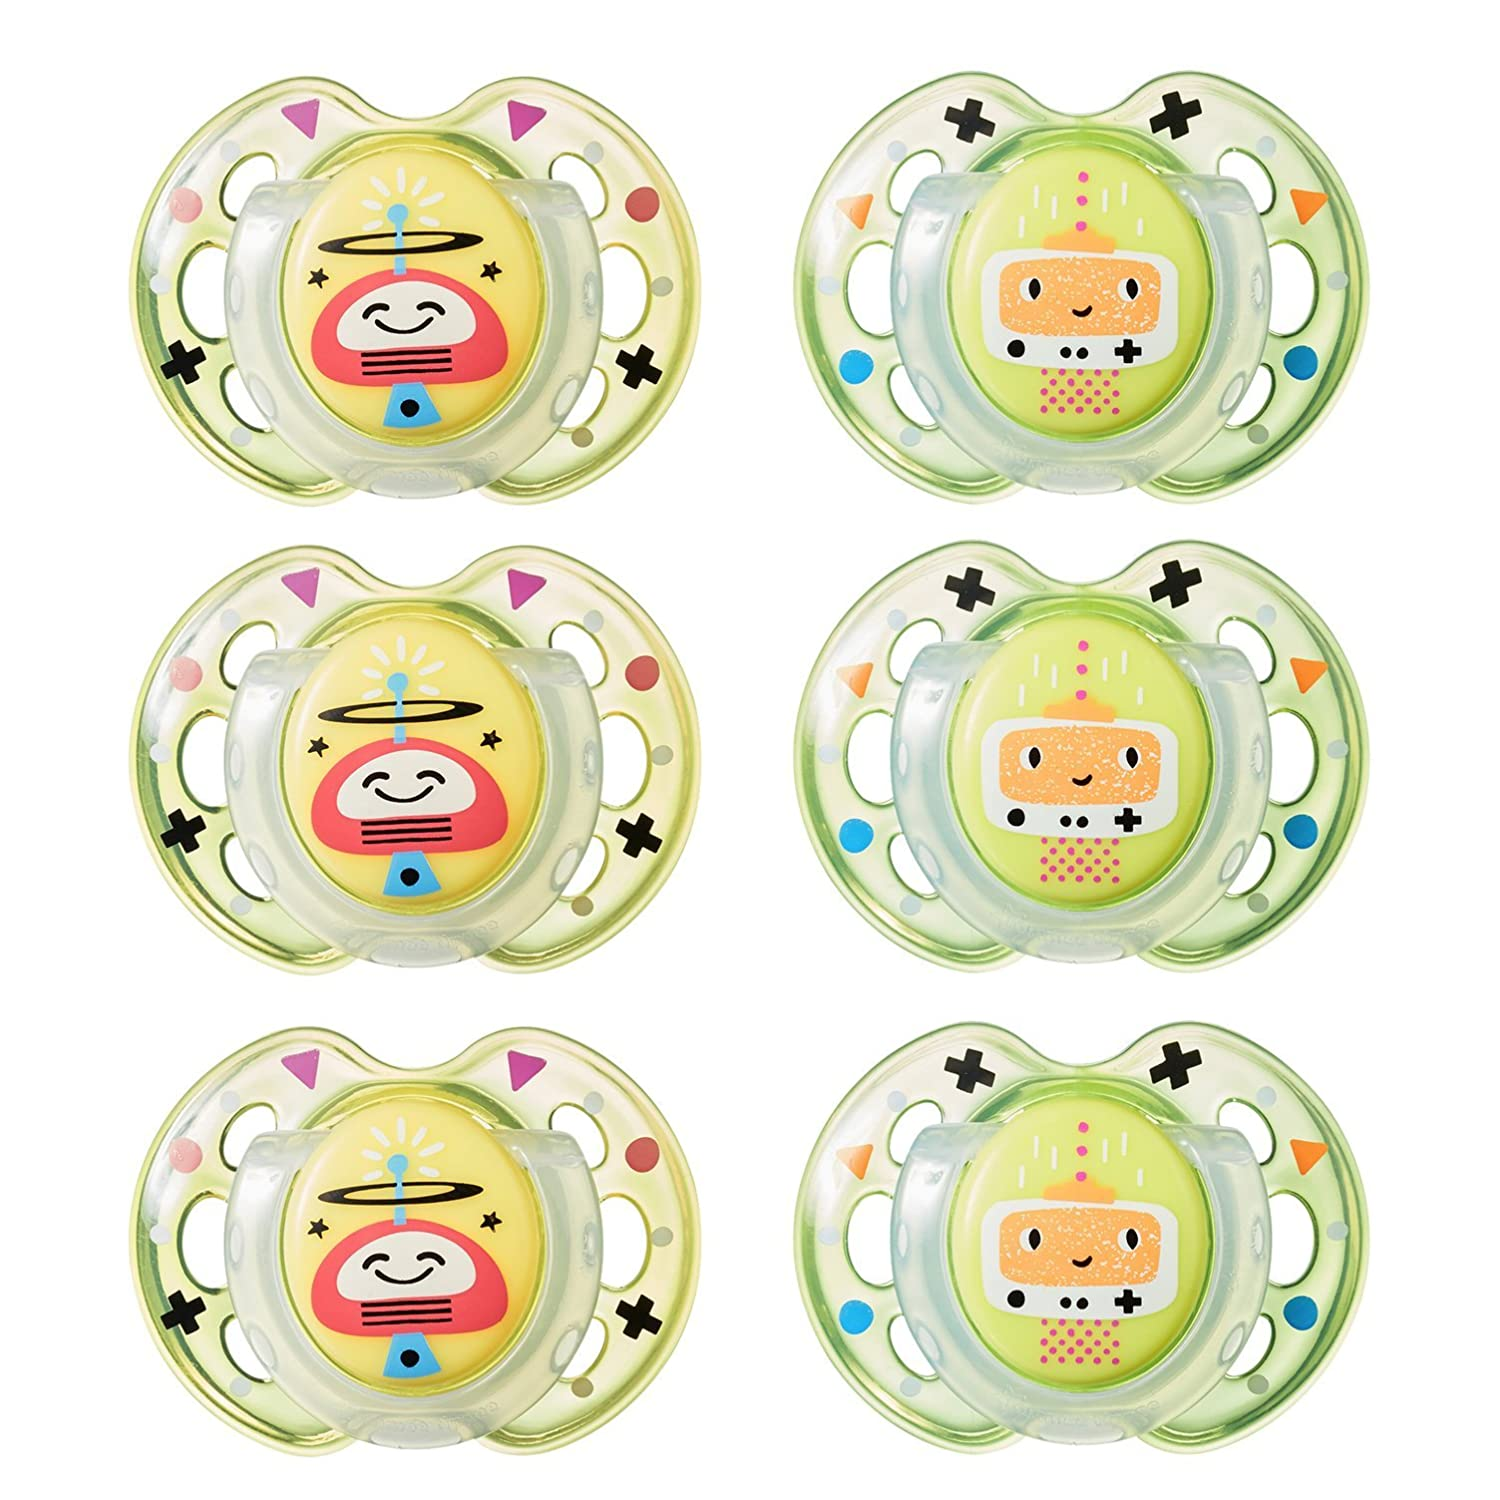 Tommee Tippee Closer to Nature Fun Style Orthodontic Baby Soothie Pacifier, 0-6 Months - Unisex, 6 Pack